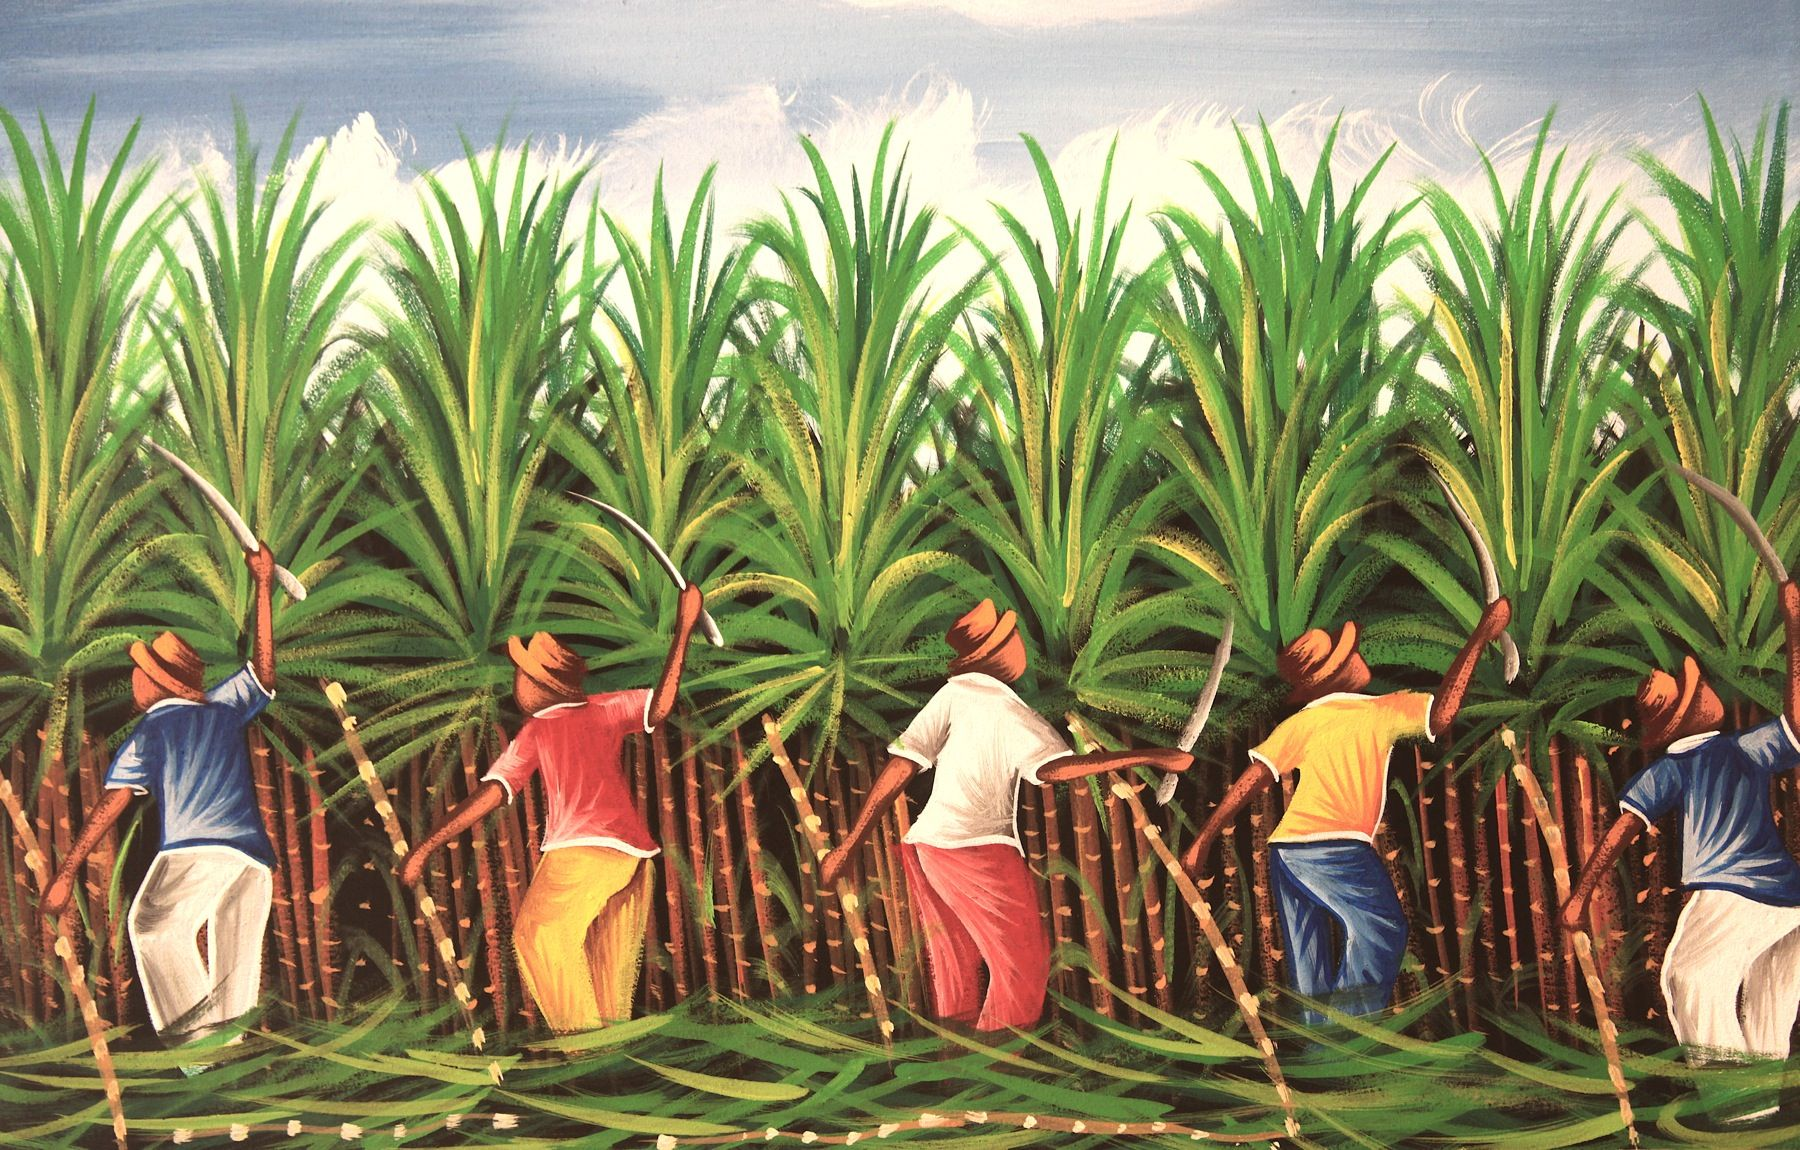 Sugar Cane Painting 20 x 24 from Project Esperanza Art